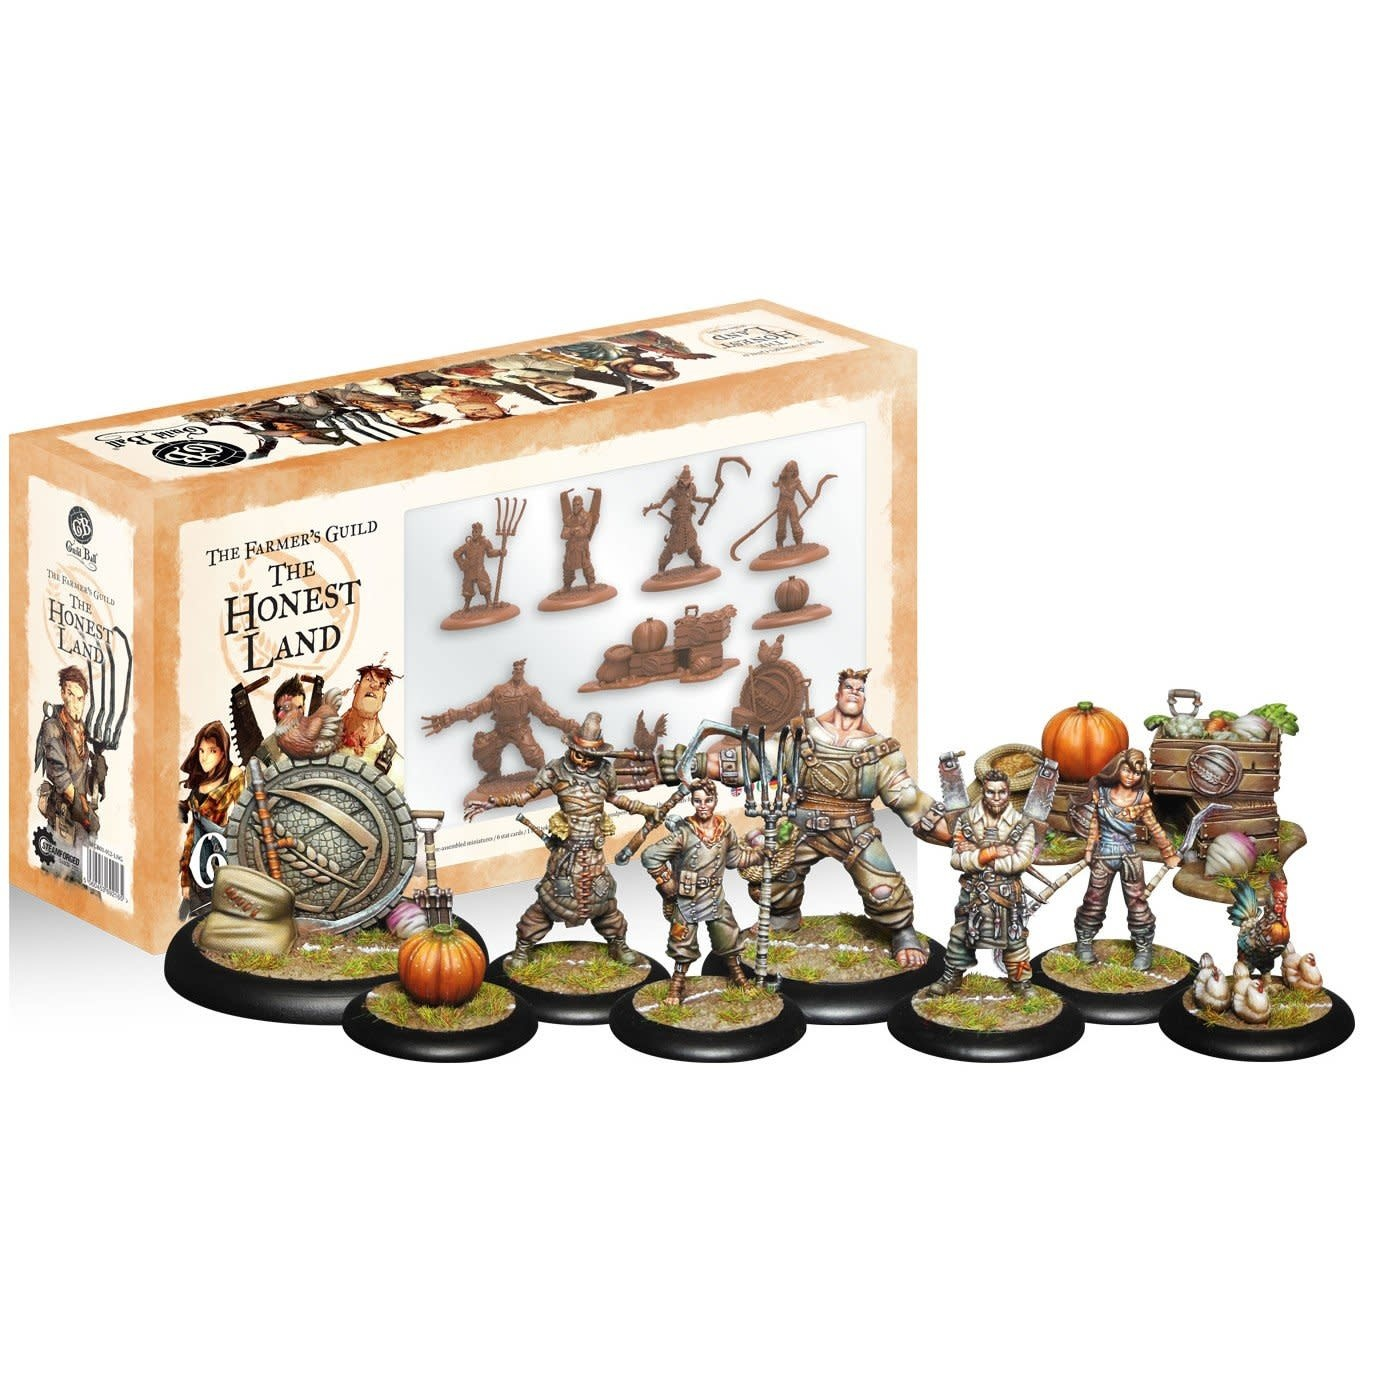 Steamforged GuildBall: Farmers Guild- The Honest Land